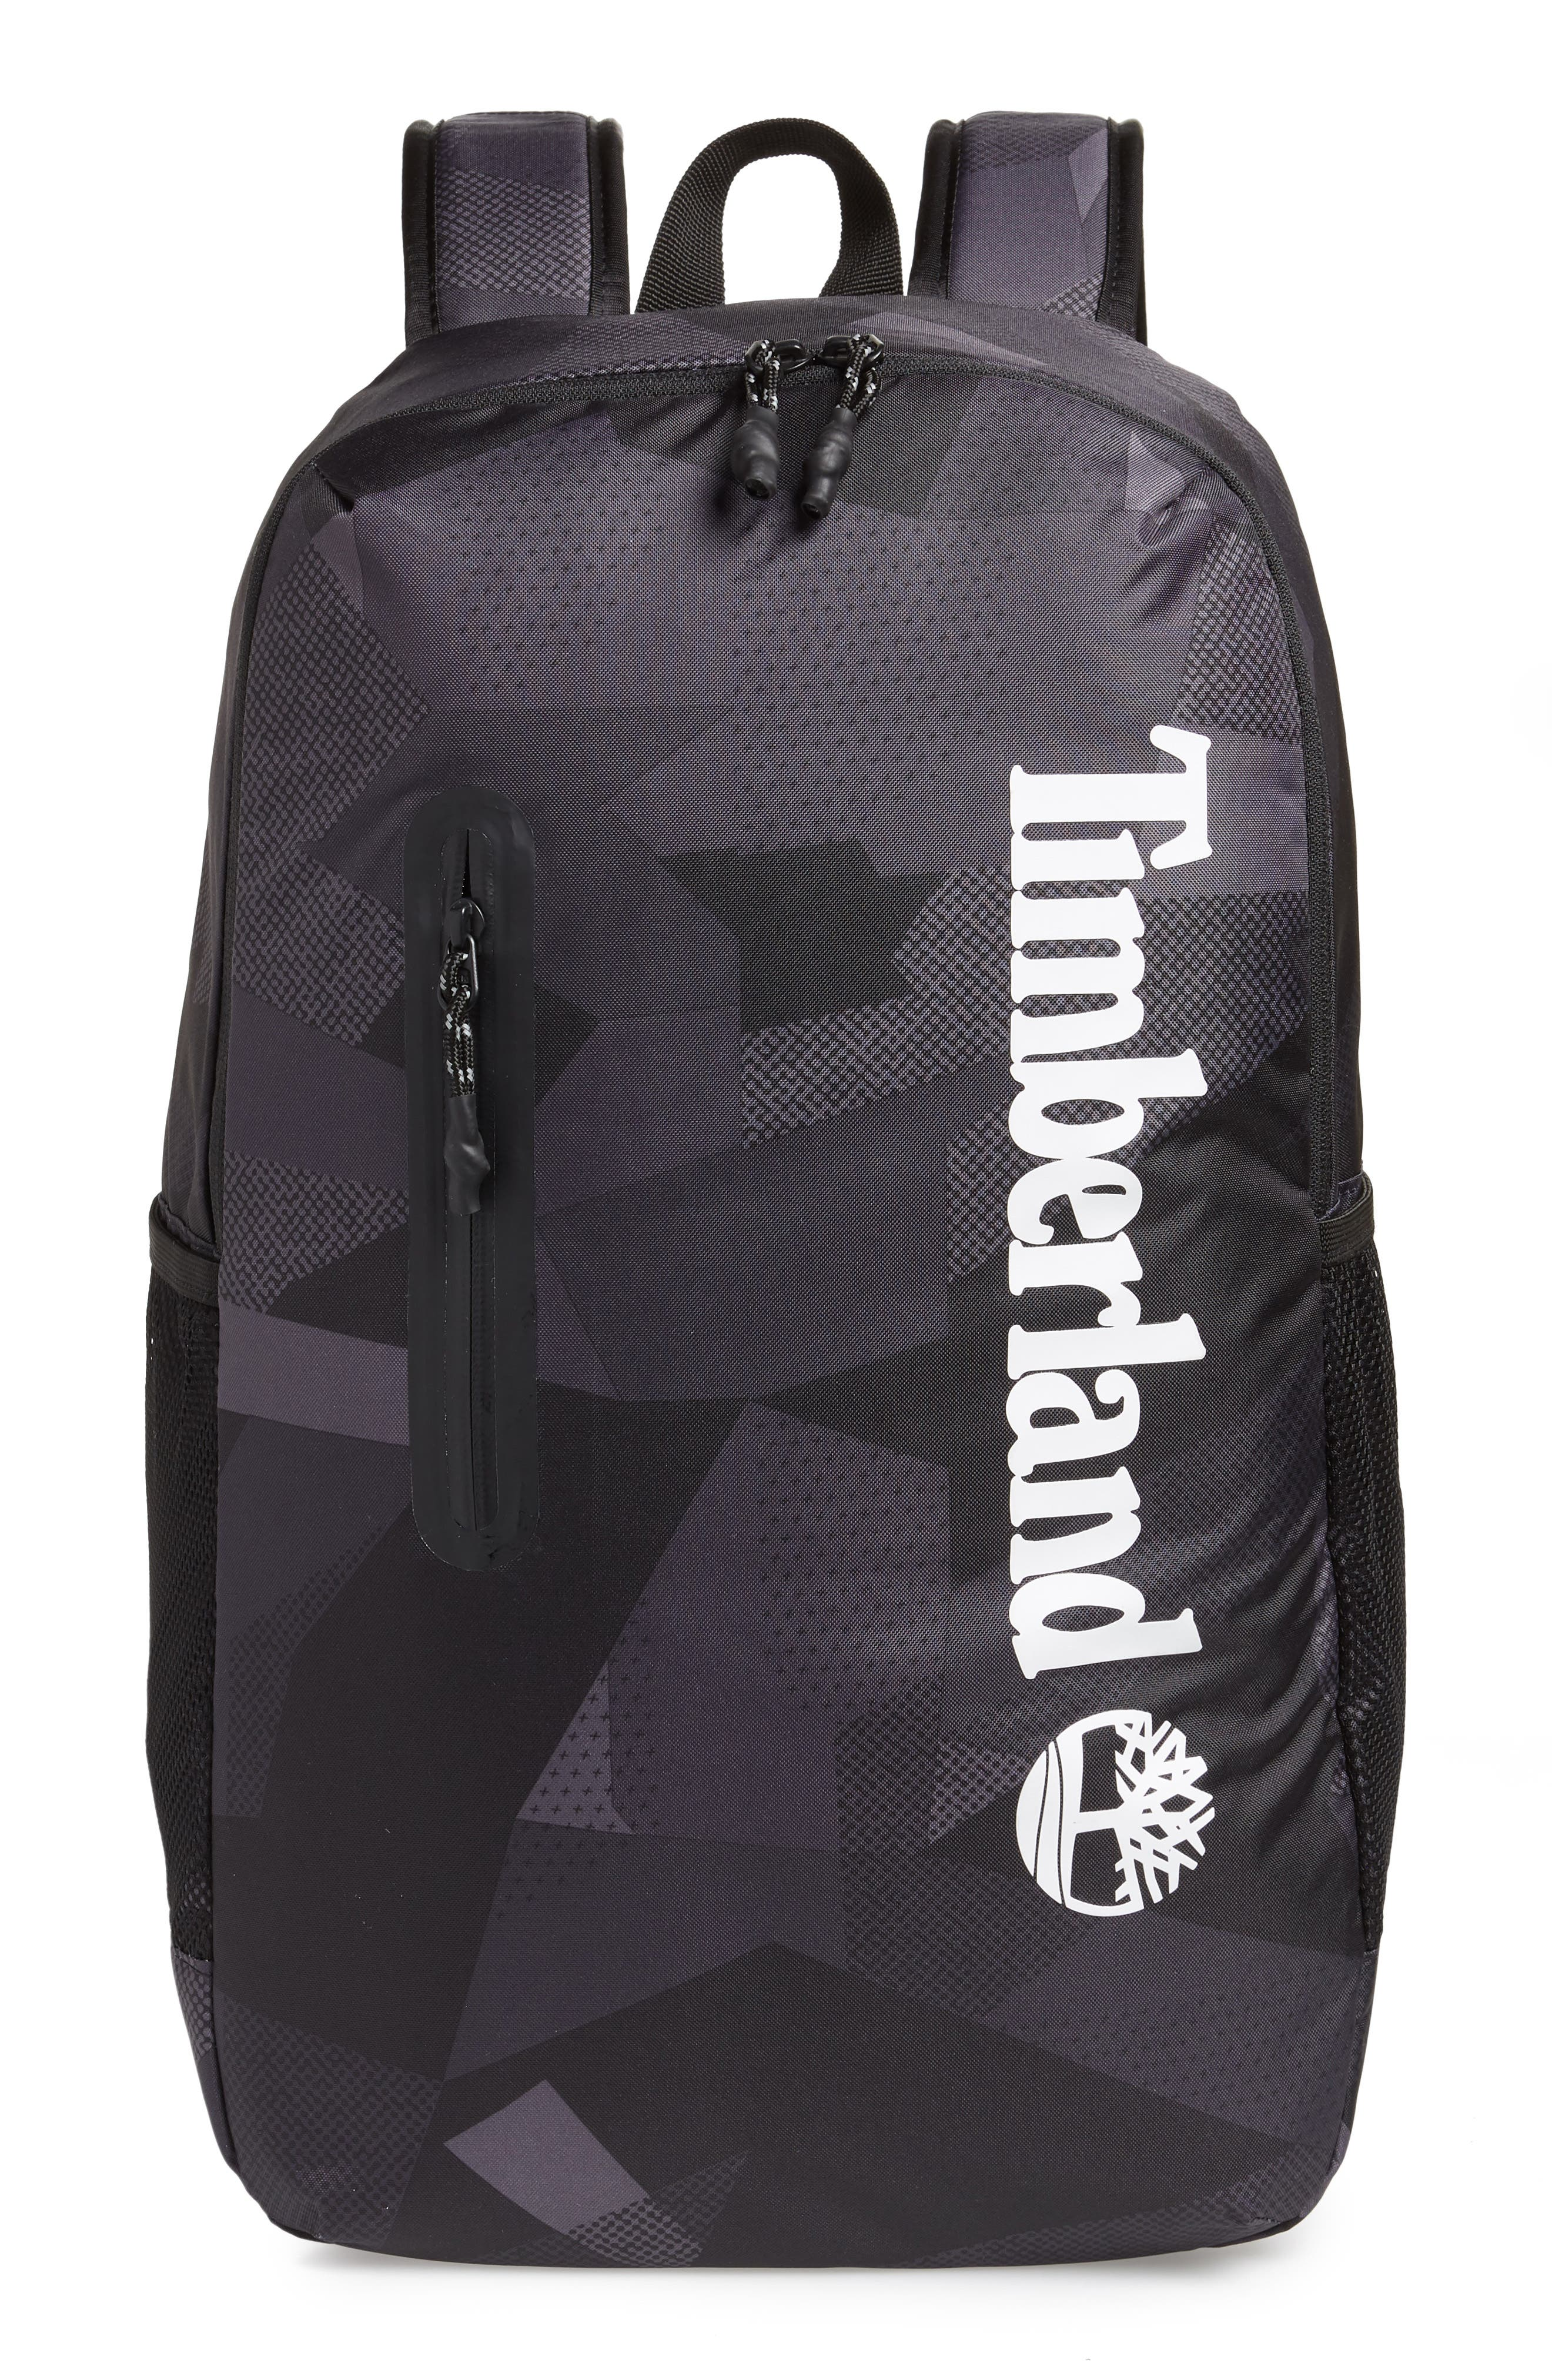 Timberland Top Zip Backpack - Black